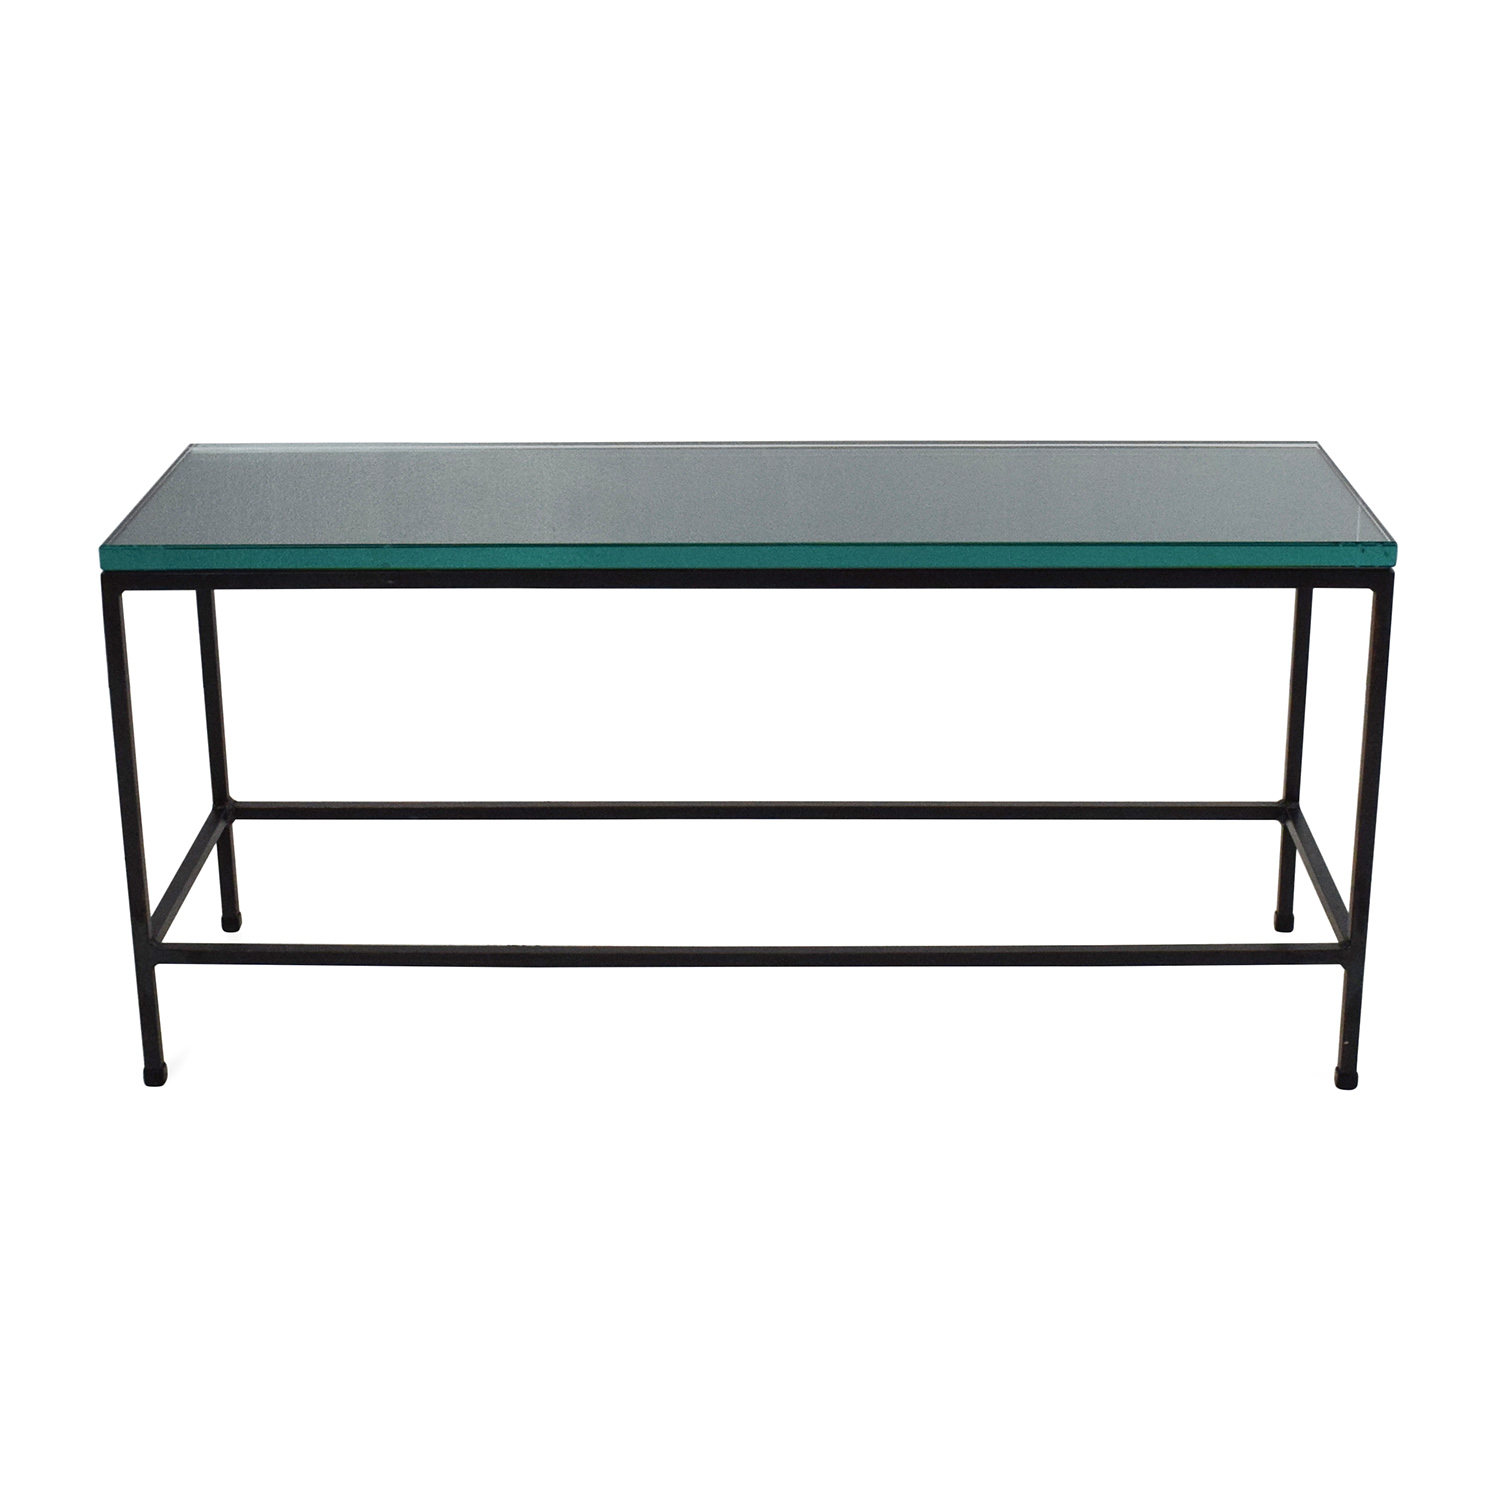 CB2 Glass Top Coffee Table CB2